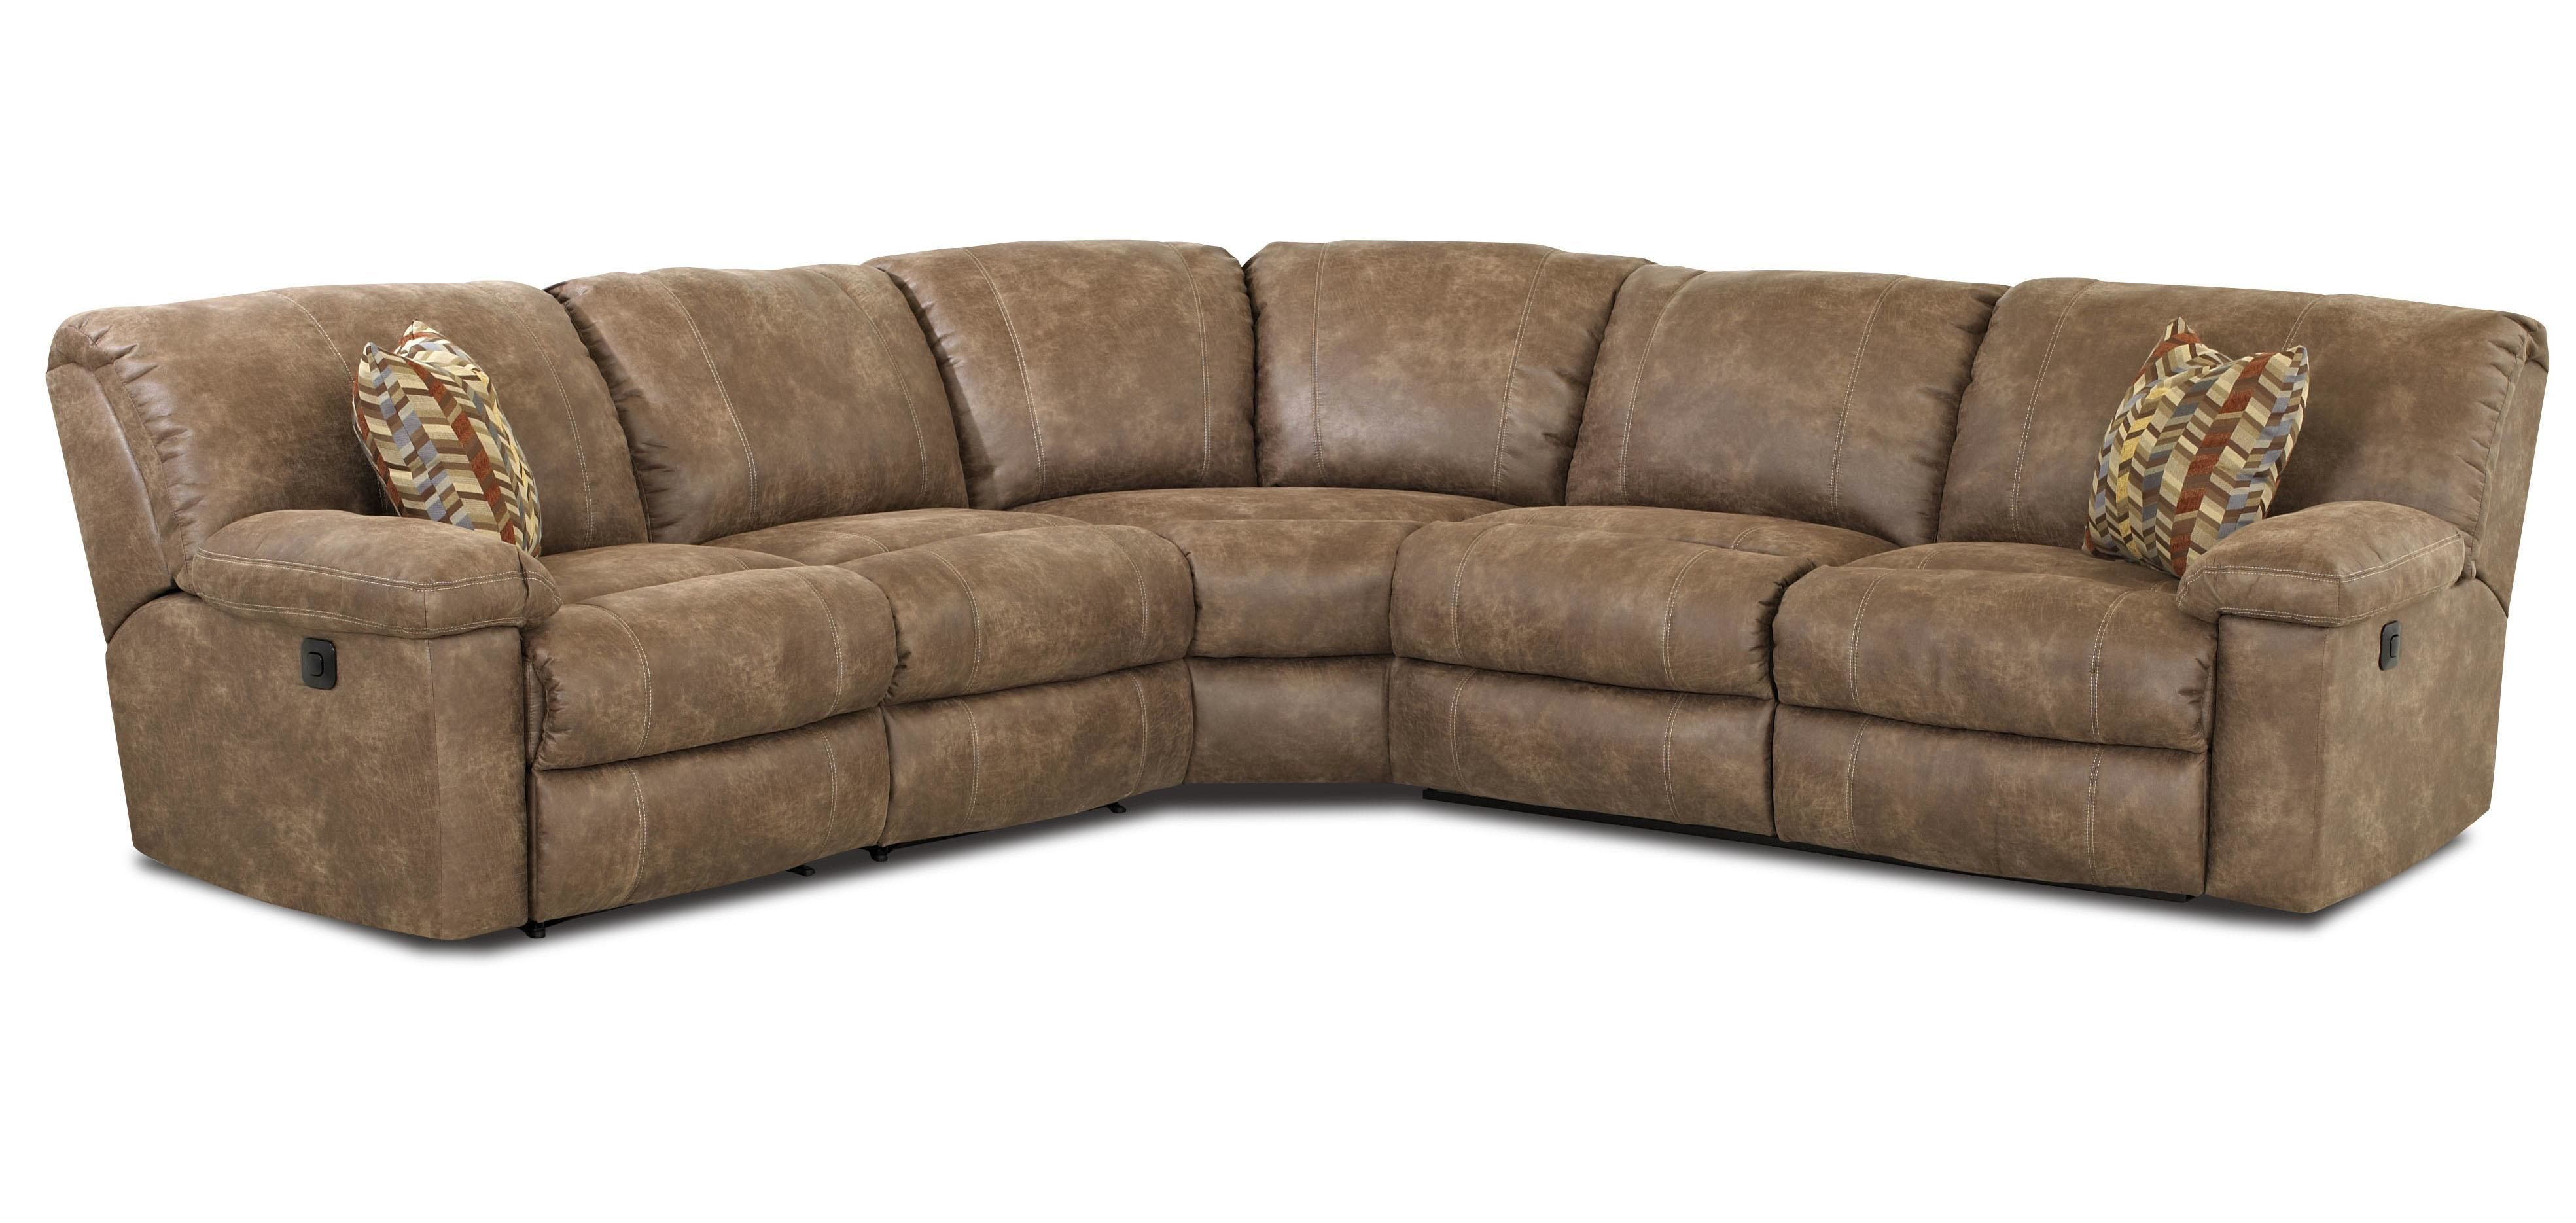 finest cheap reclining sofas picture-Fancy Cheap Reclining sofas Image